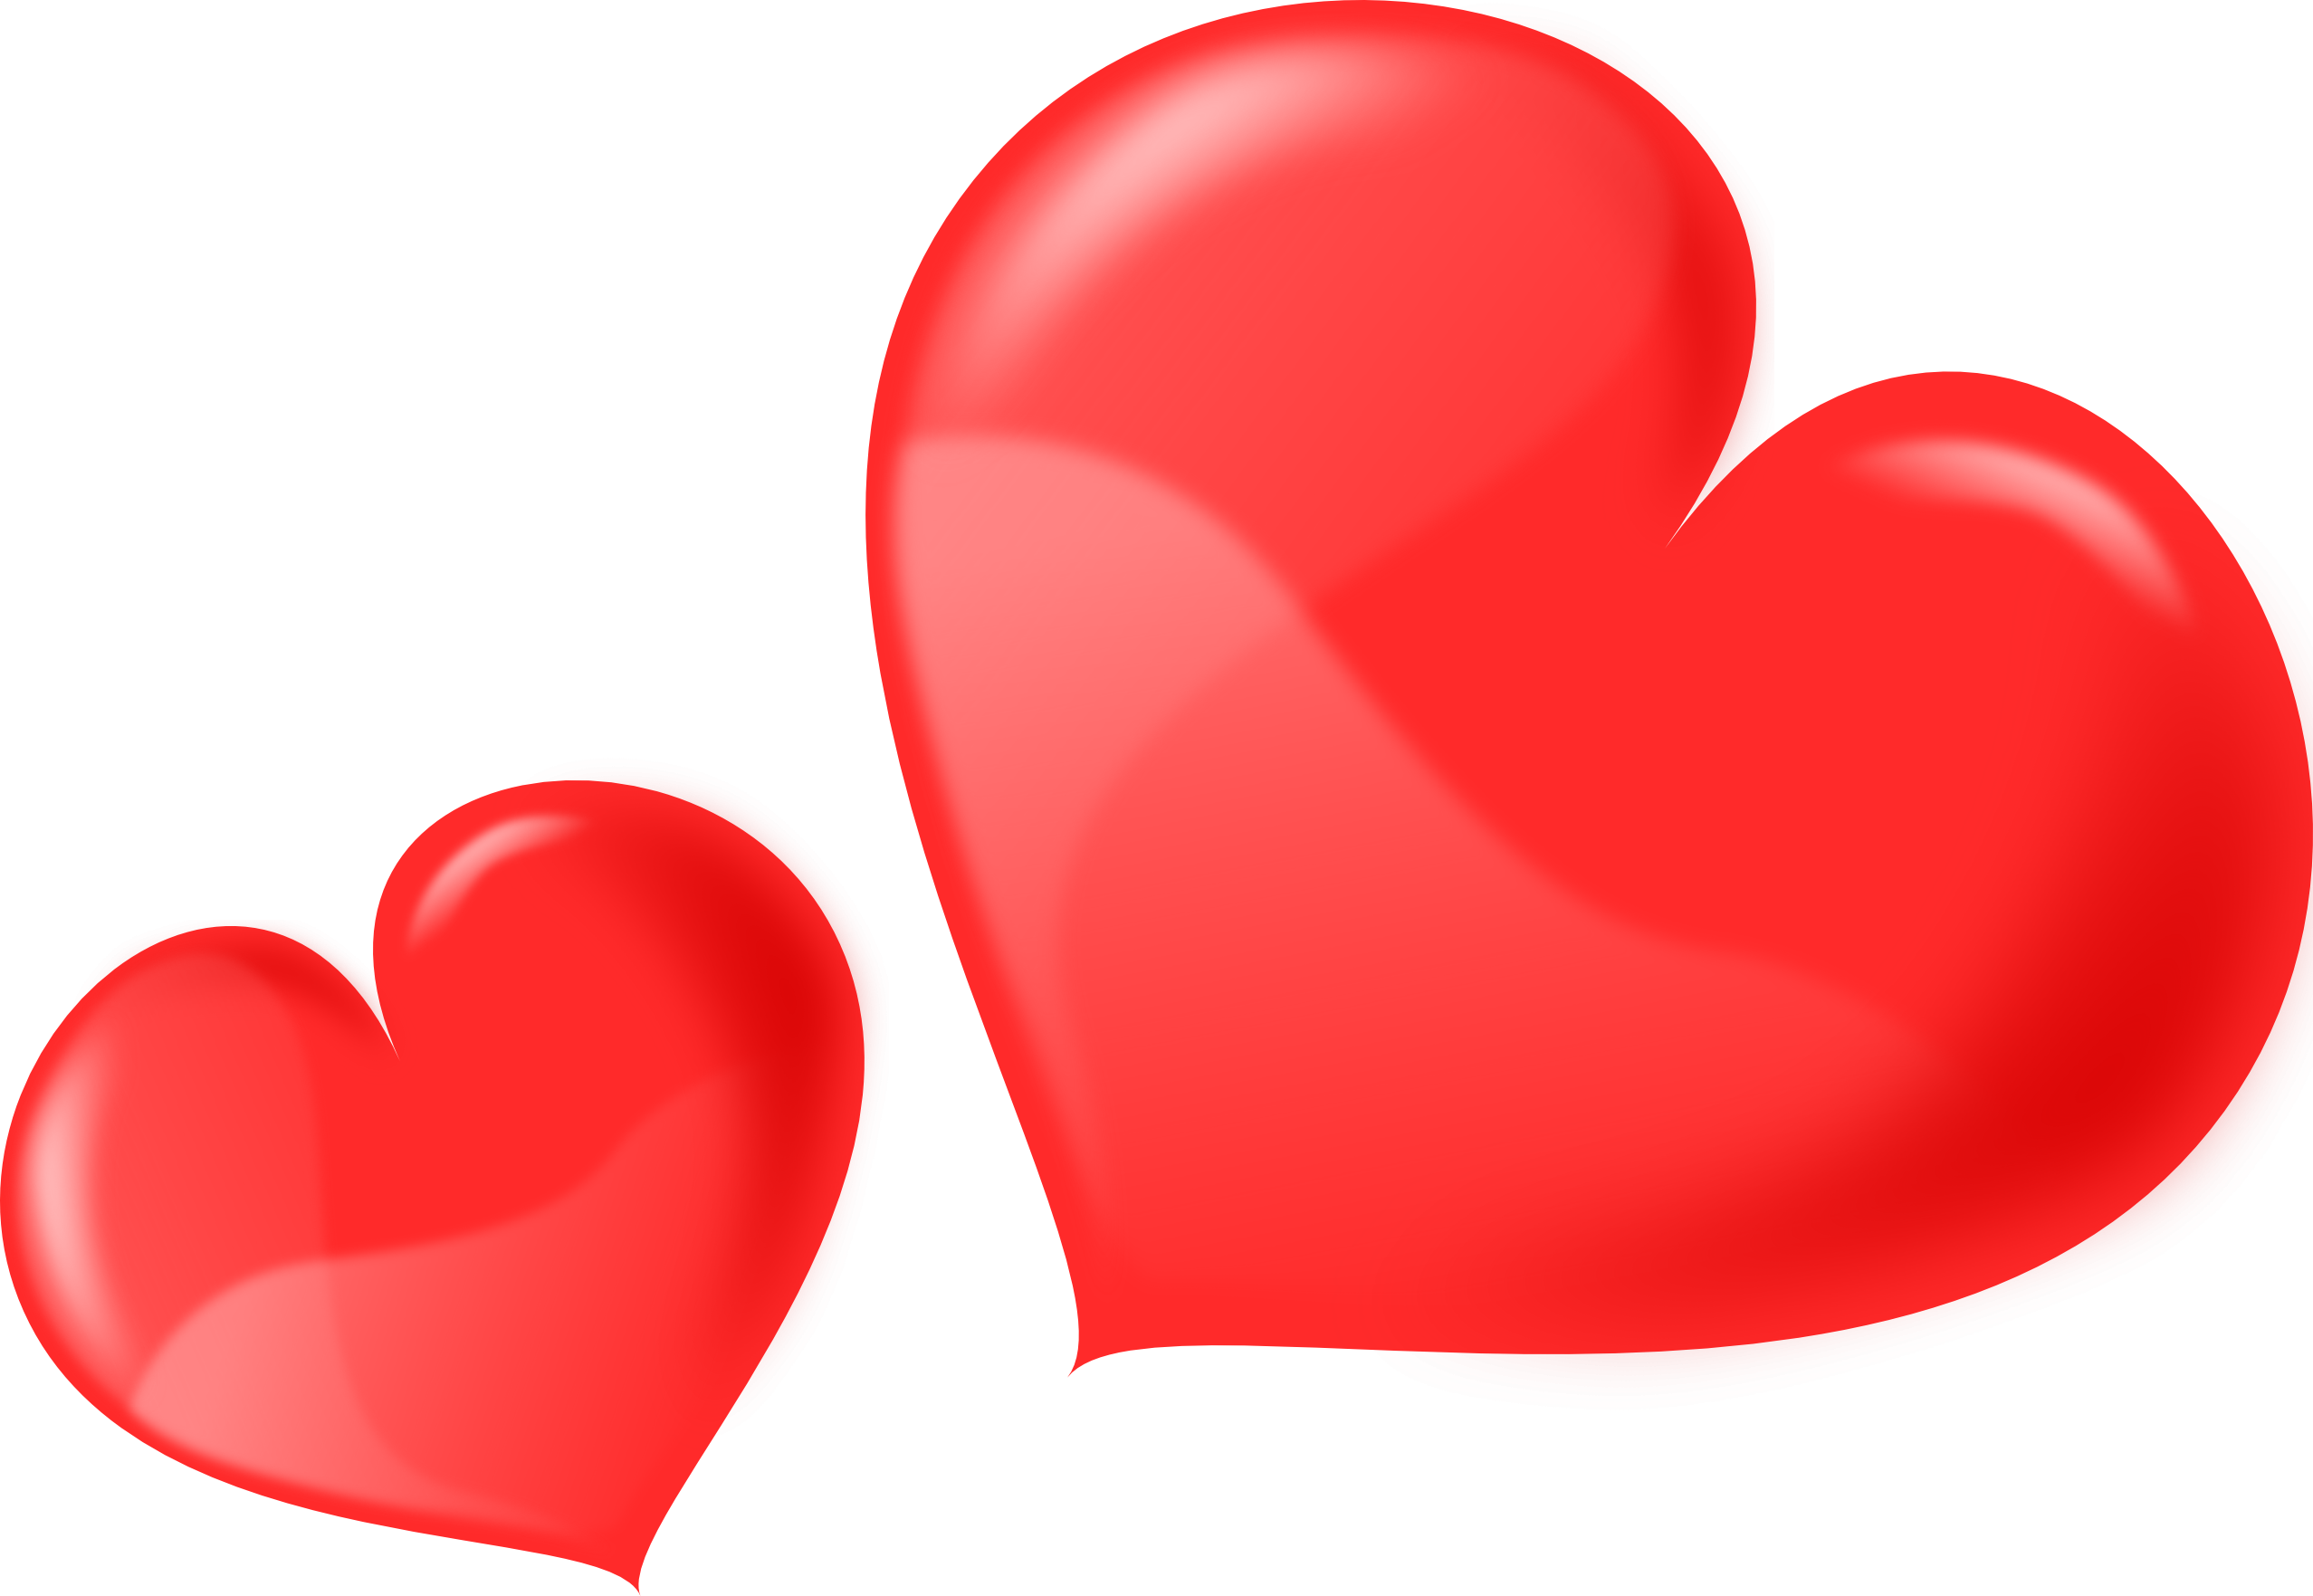 uploads heart heart PNG51123 64